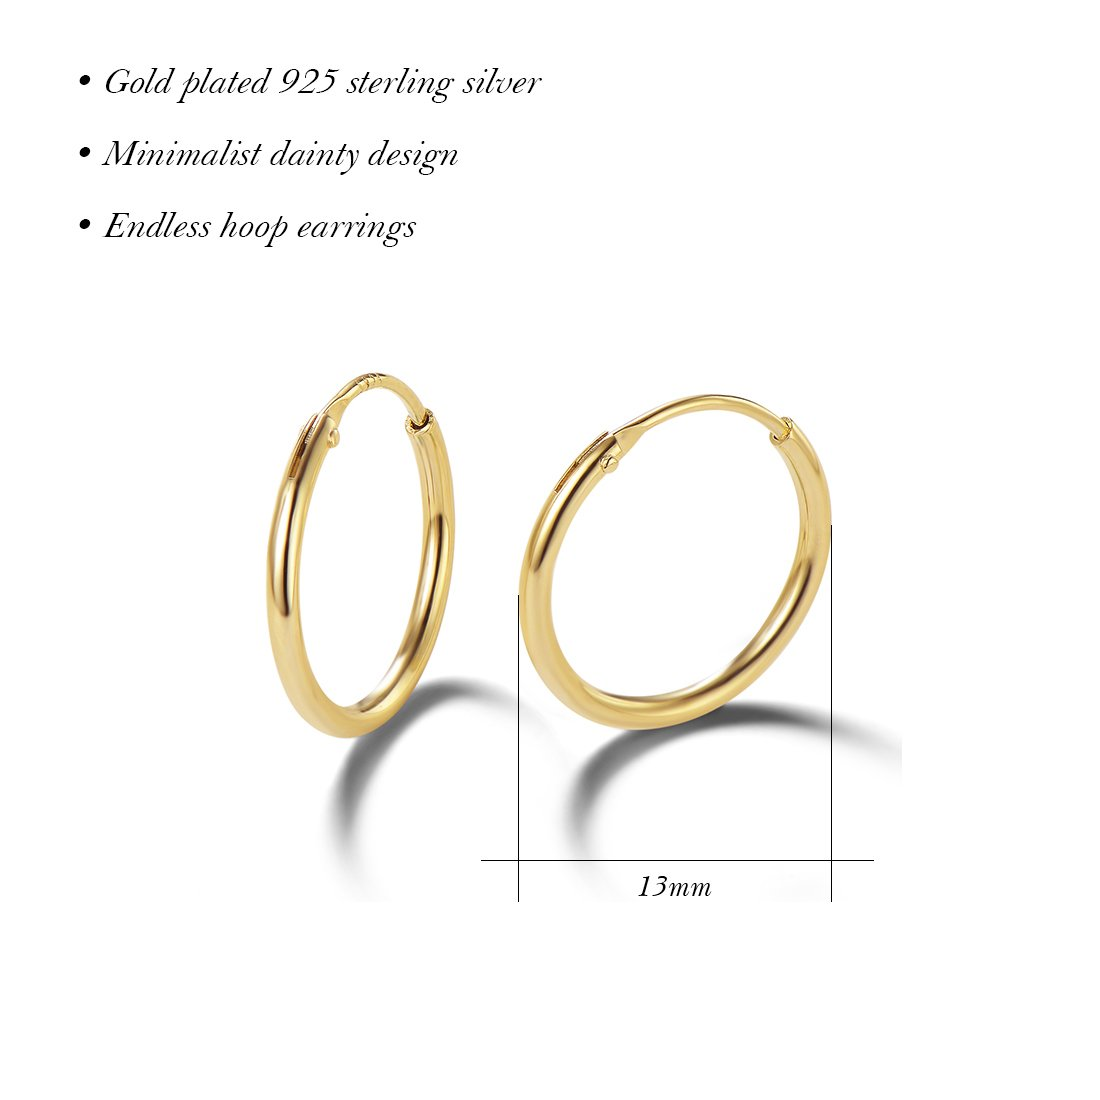 Carleen 14K Yellow Gold Plated 925 Sterling Silver Dainty Endless Hoop Earrings for Women Girls (13mm) by Carleen (Image #3)